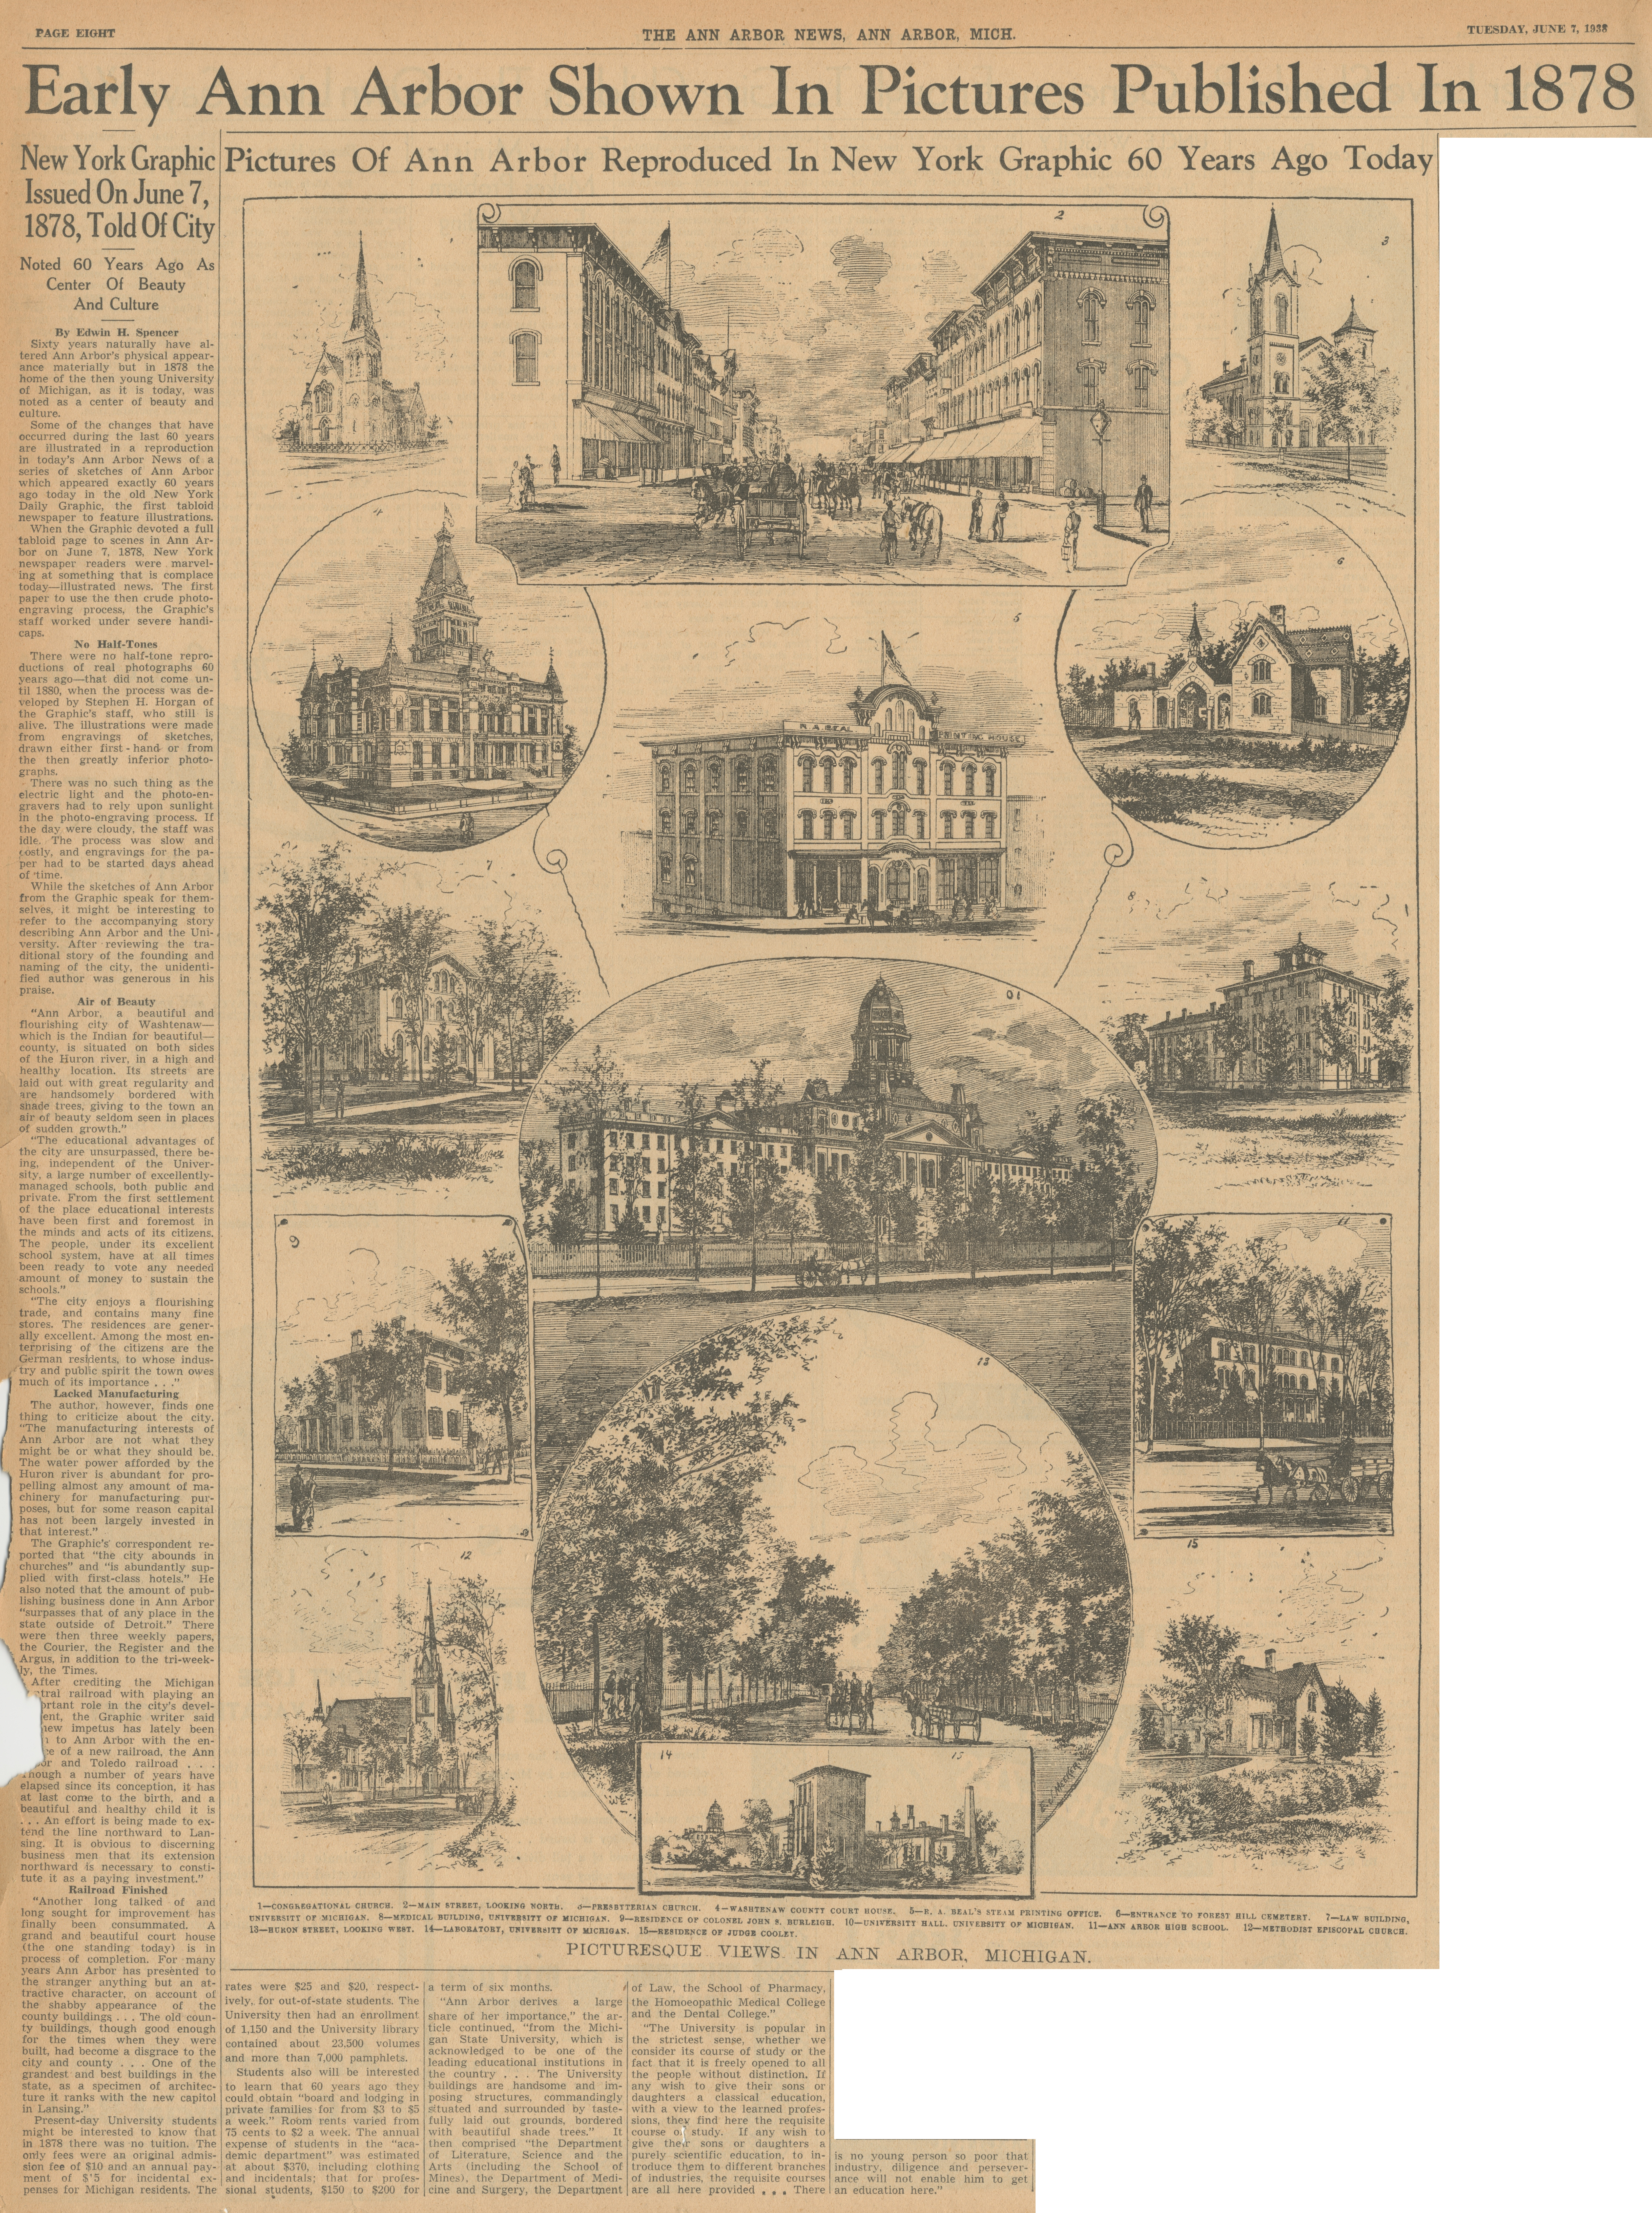 Early Ann Arbor Shown In Pictures Published In 1878 - New York Graphic Issued On June 7, 1878, Told of City - Noted 60 Years Ago As Center of Beauty and Cultures image